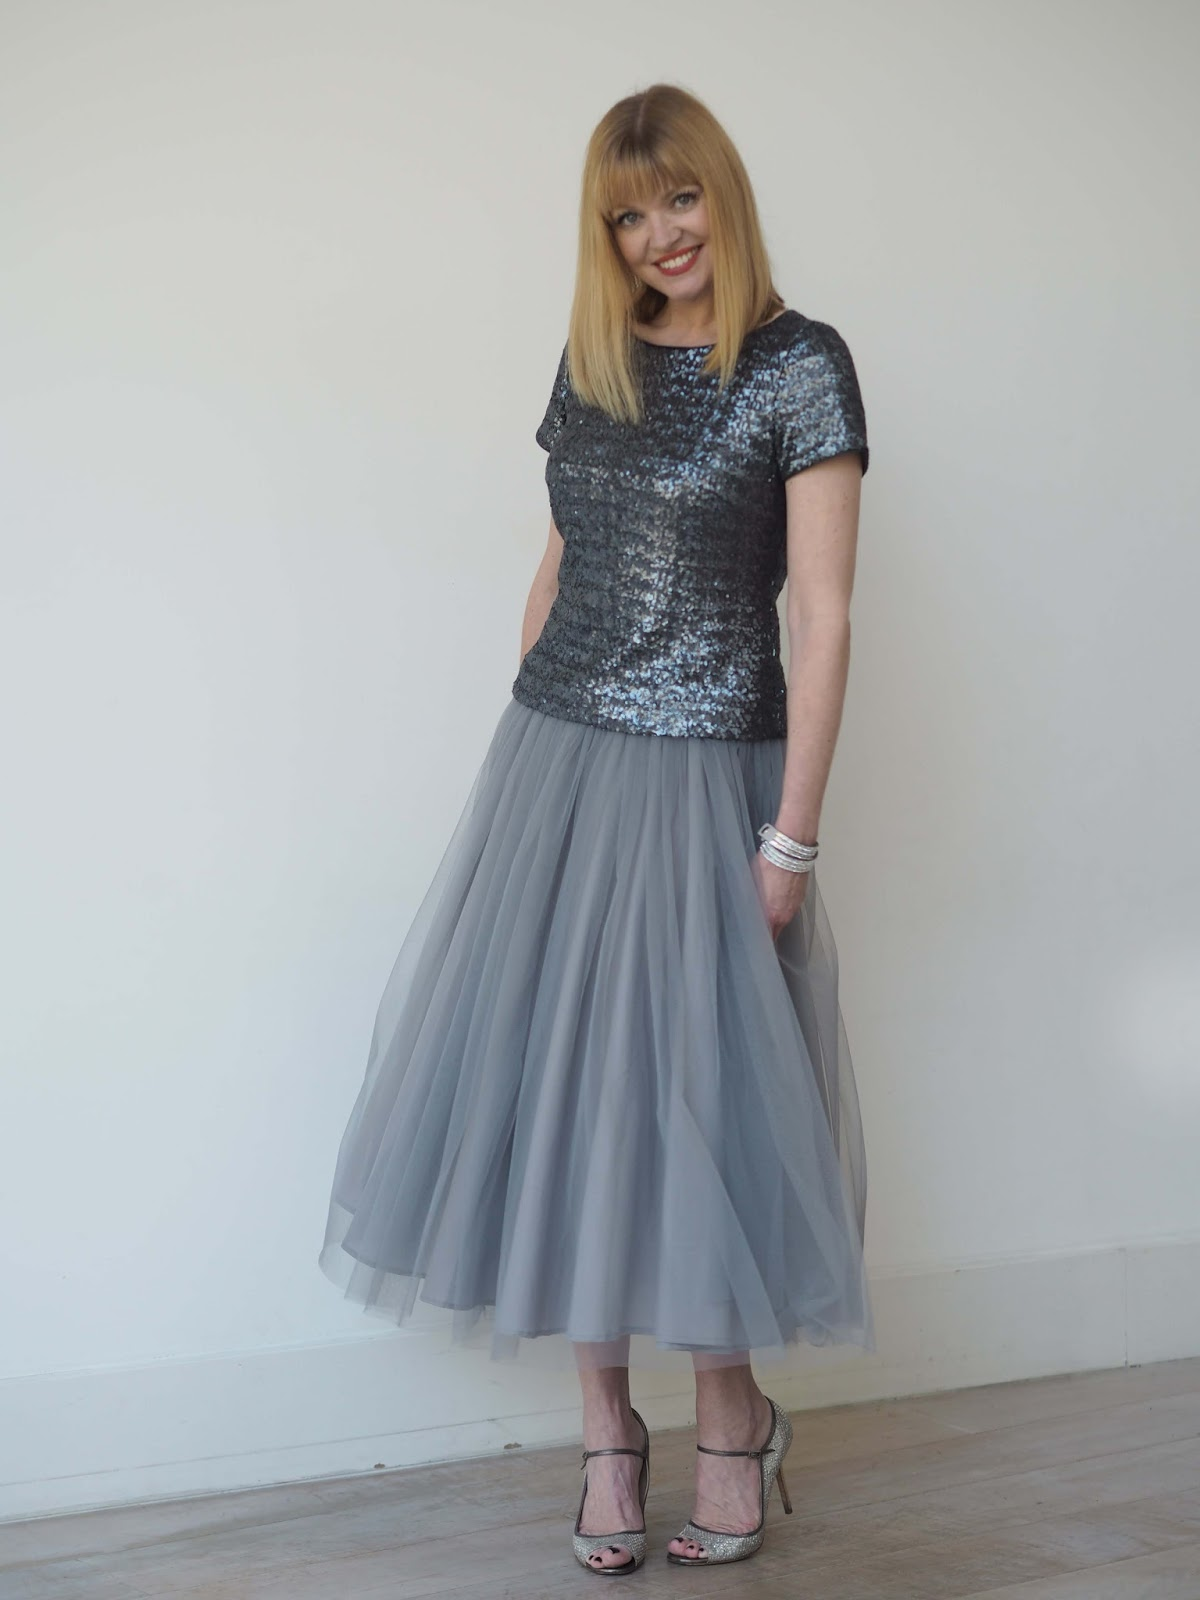 Grey tulle skirt, sequined top, glitter Jimmy Choos, over 40 style